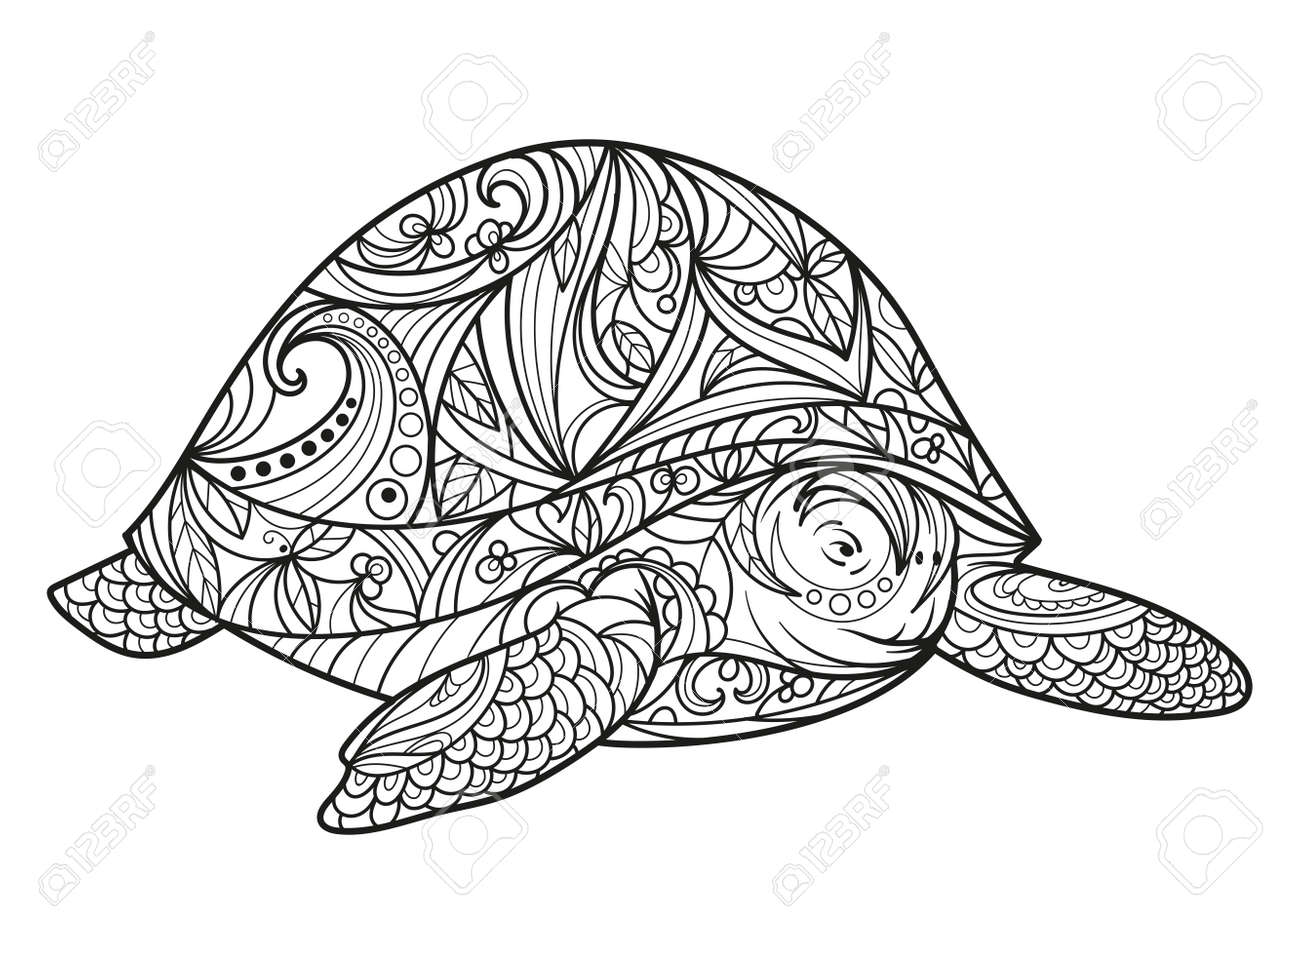 Turtle Coloring Book For Adults Illustration Anti Stress Adult Style